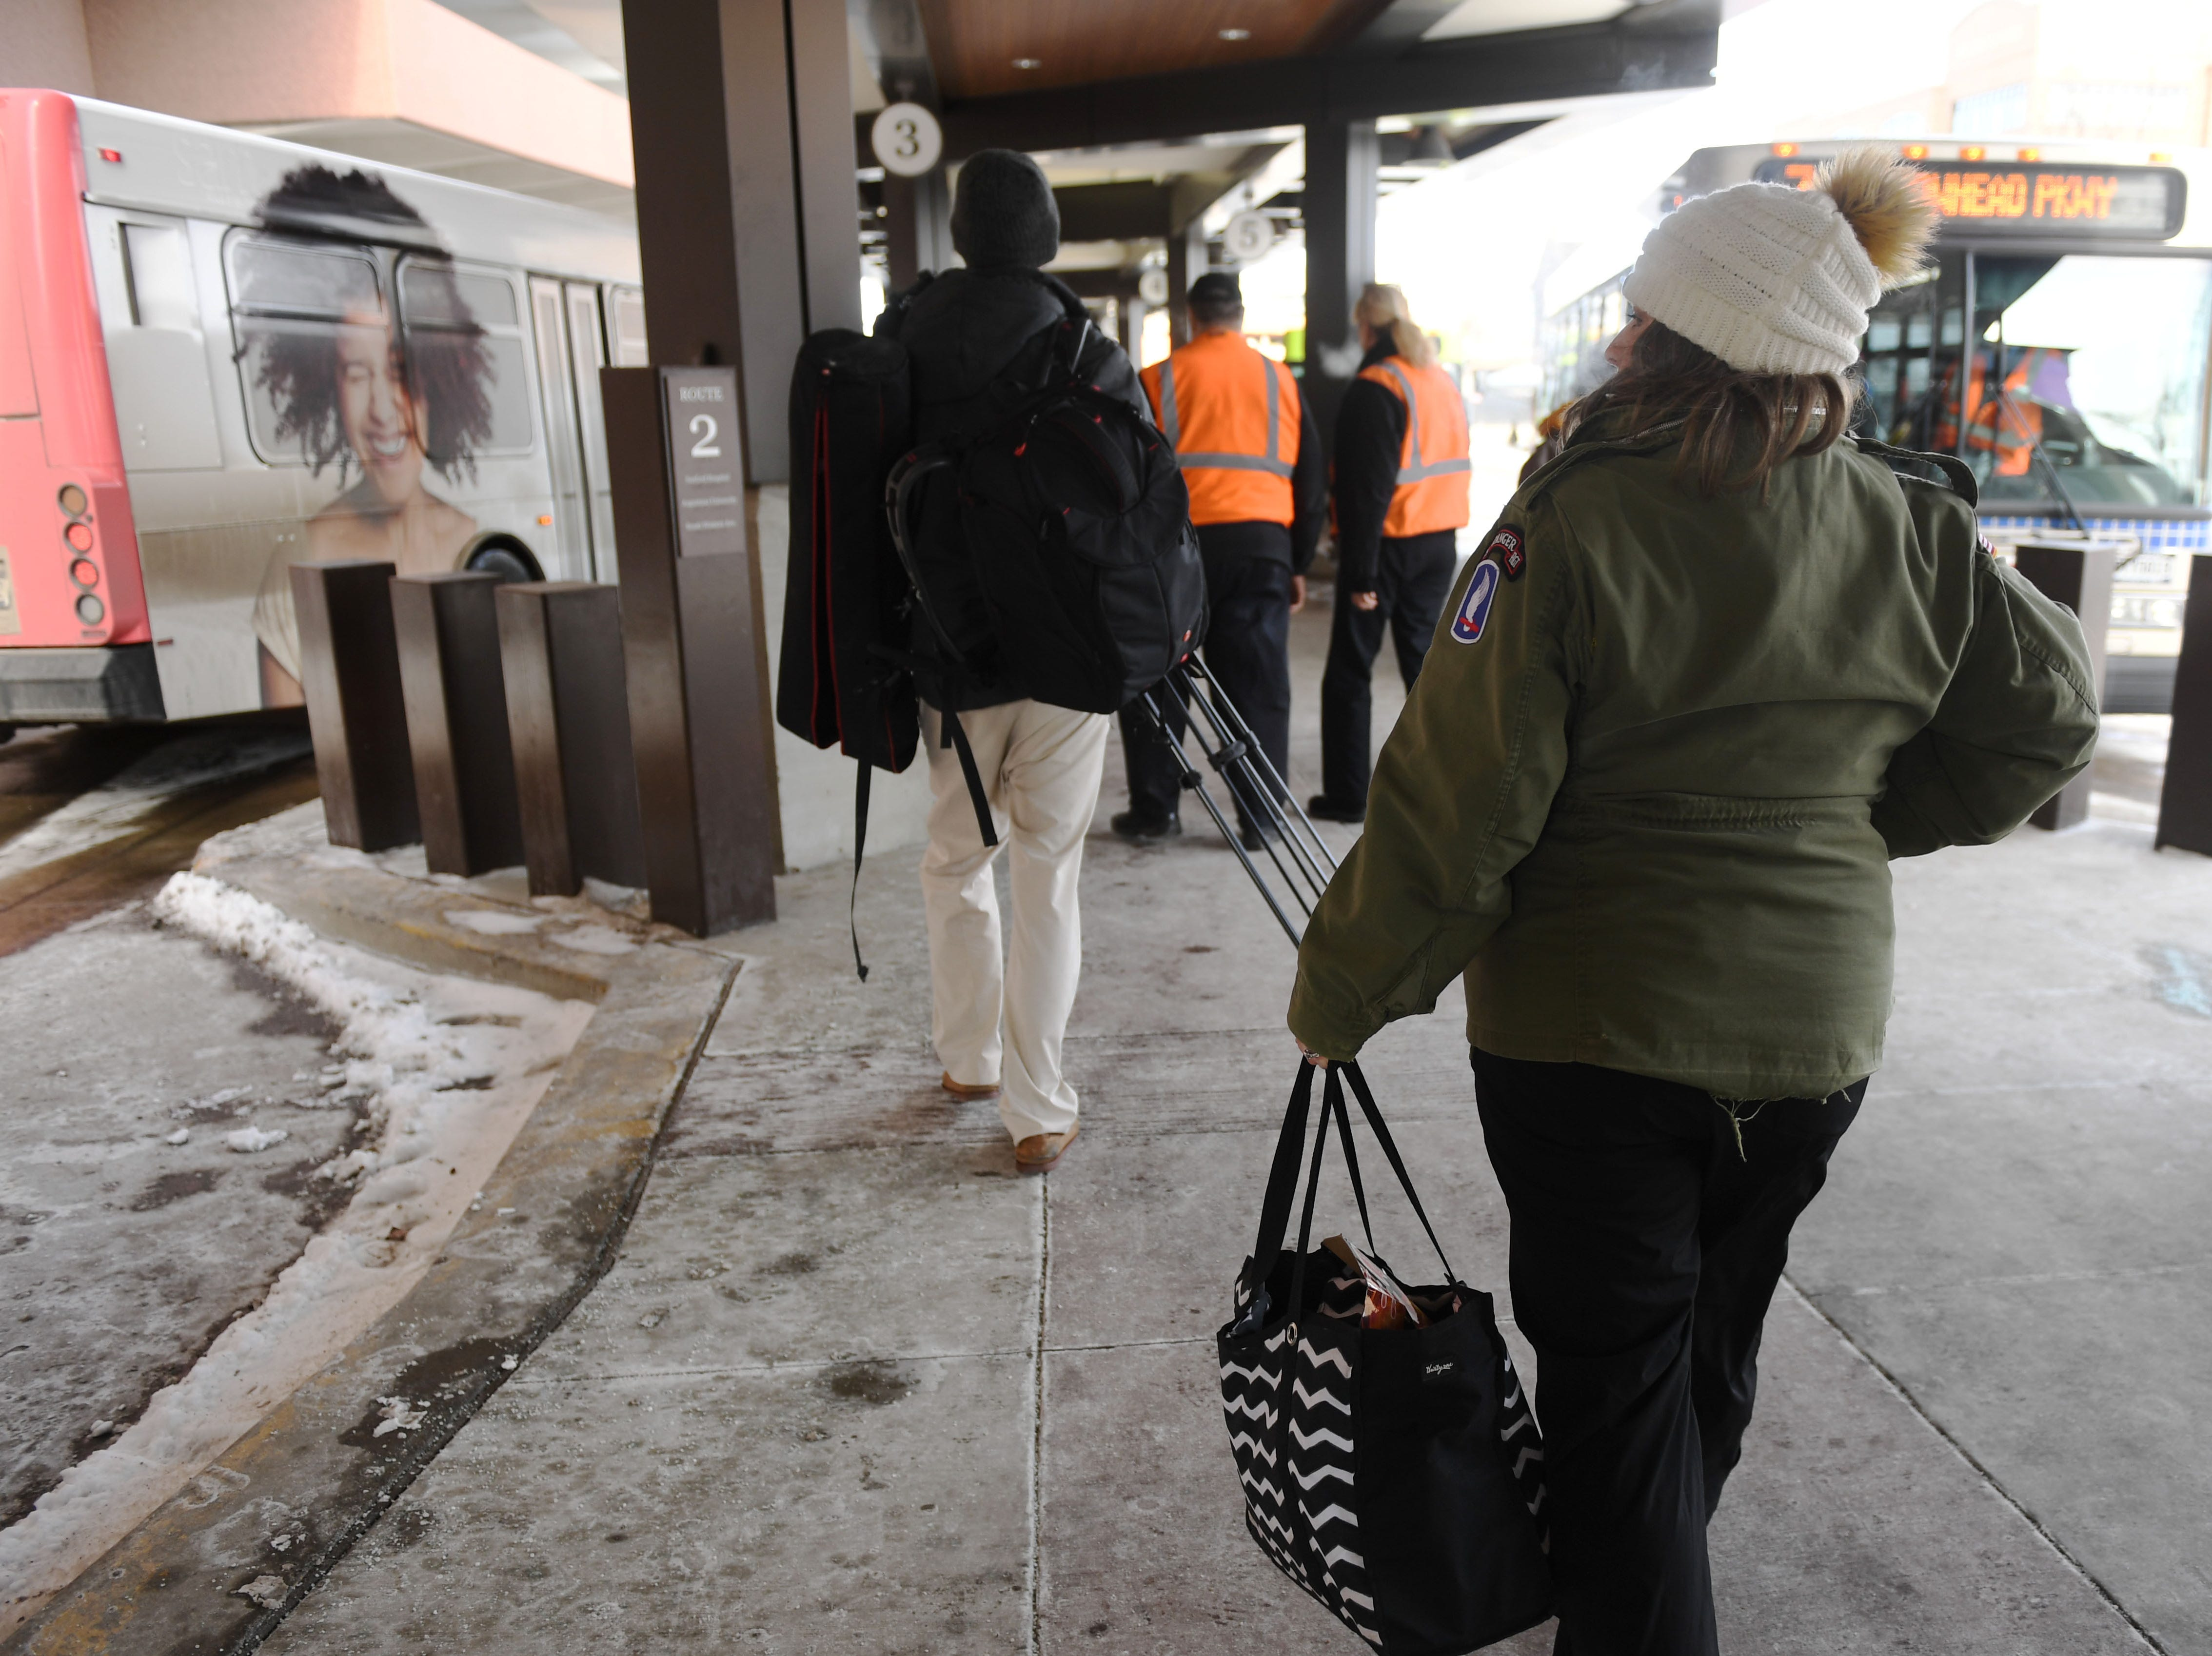 Amy Lawrence walks around the The Bus Stop downtown terminal handing out hand warmers to passengers, Tuesday, Jan. 29, in Sioux Falls.